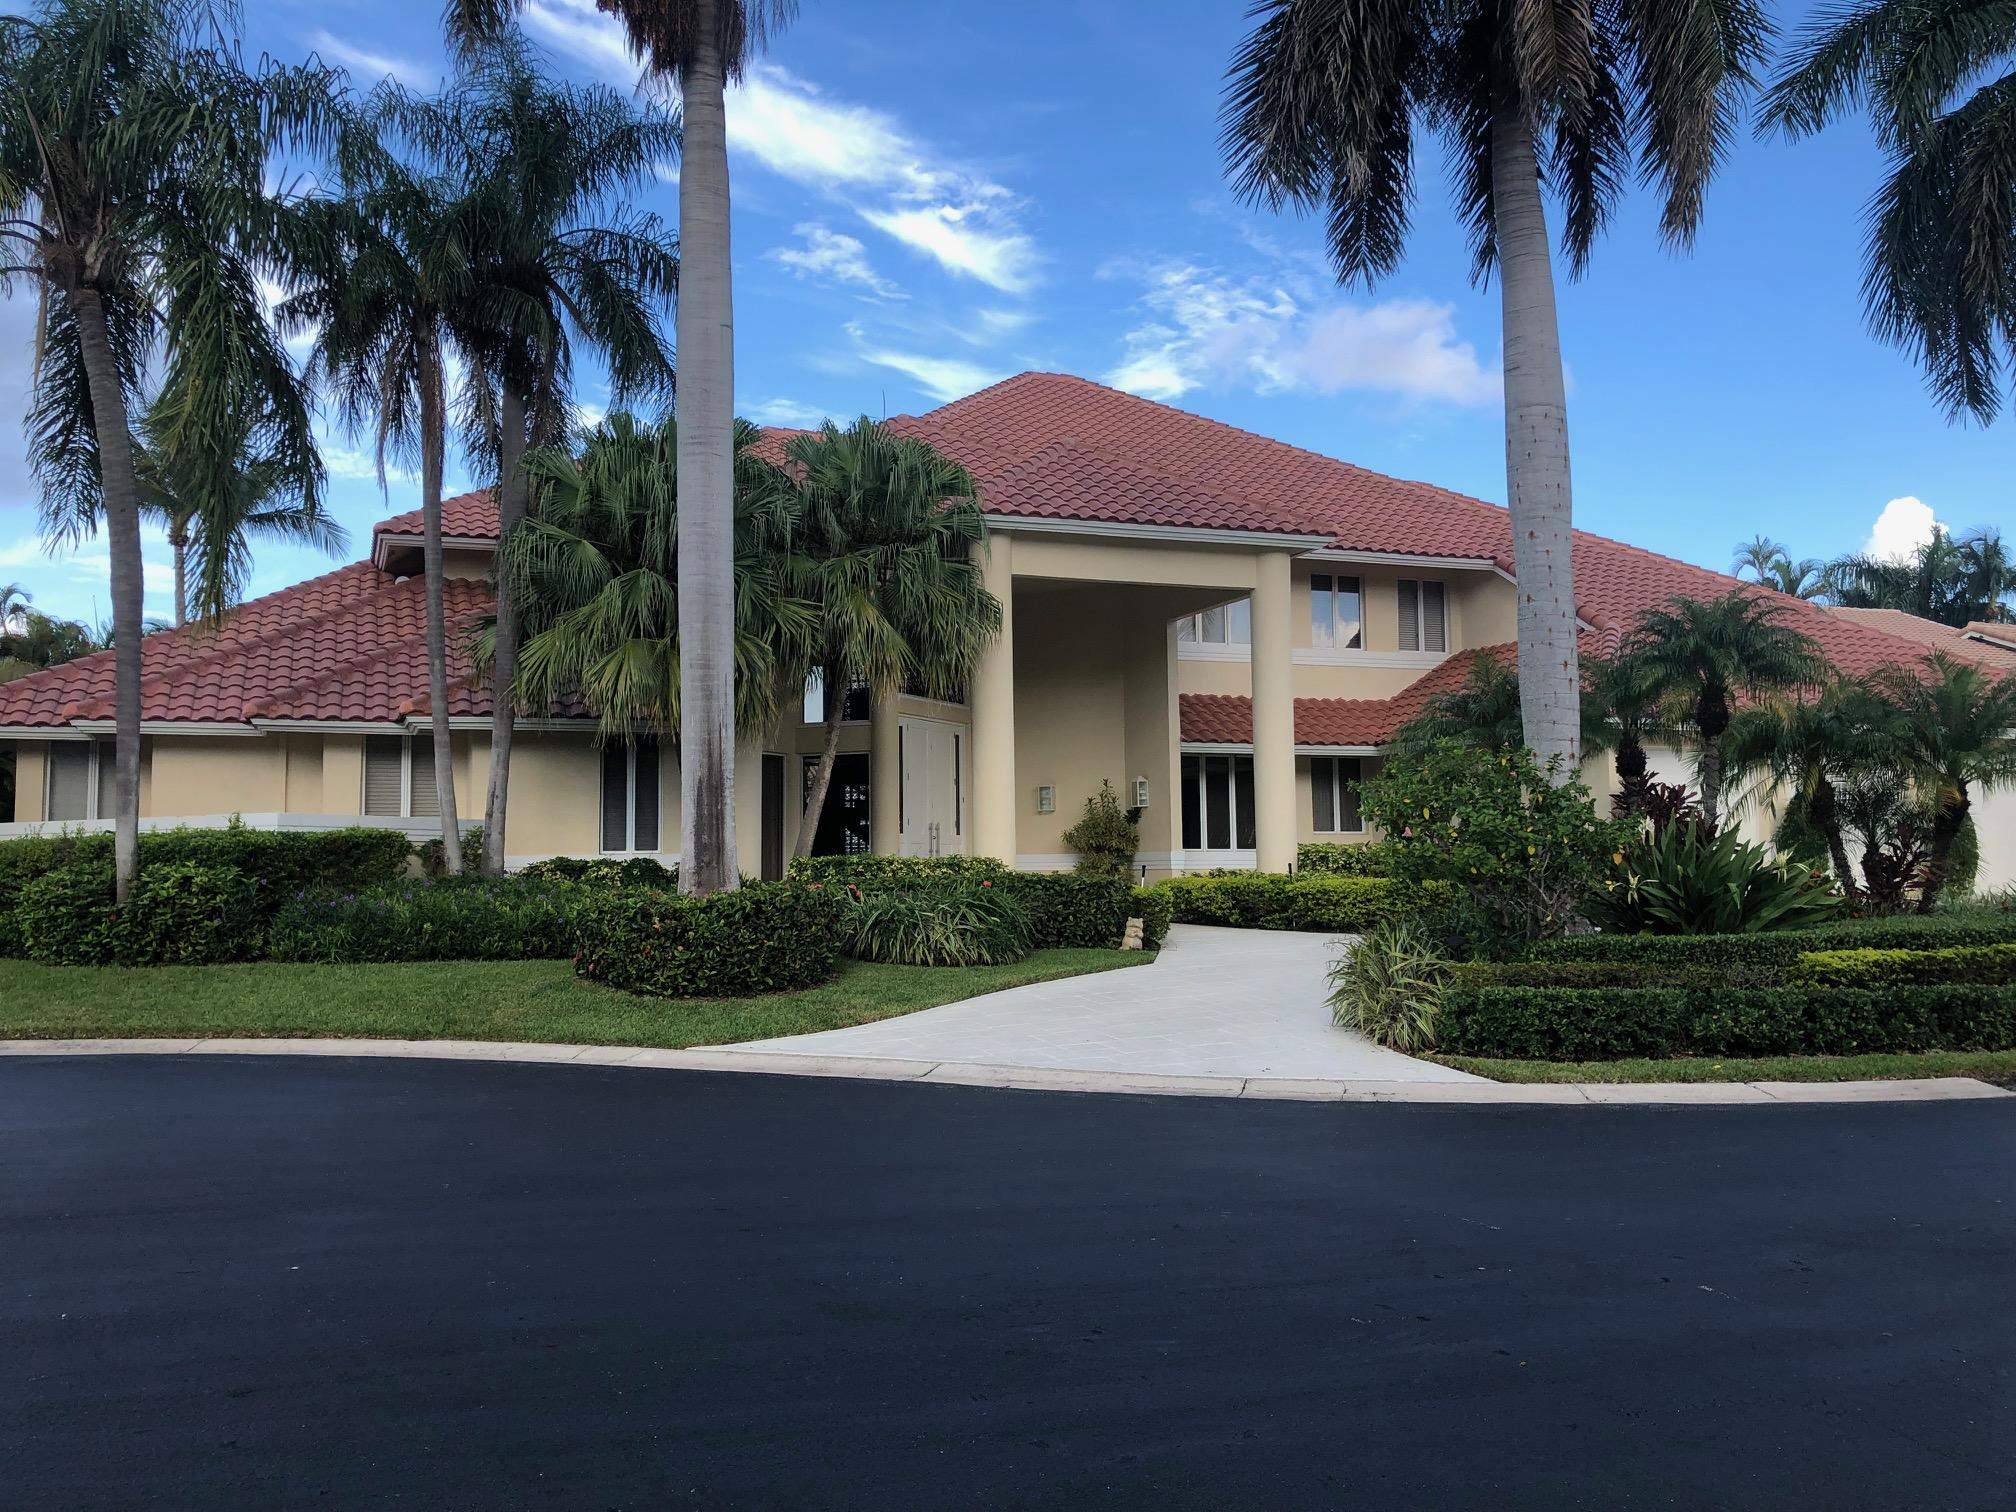 Photo of 5053 Blue Heron Way, Boca Raton, FL 33431